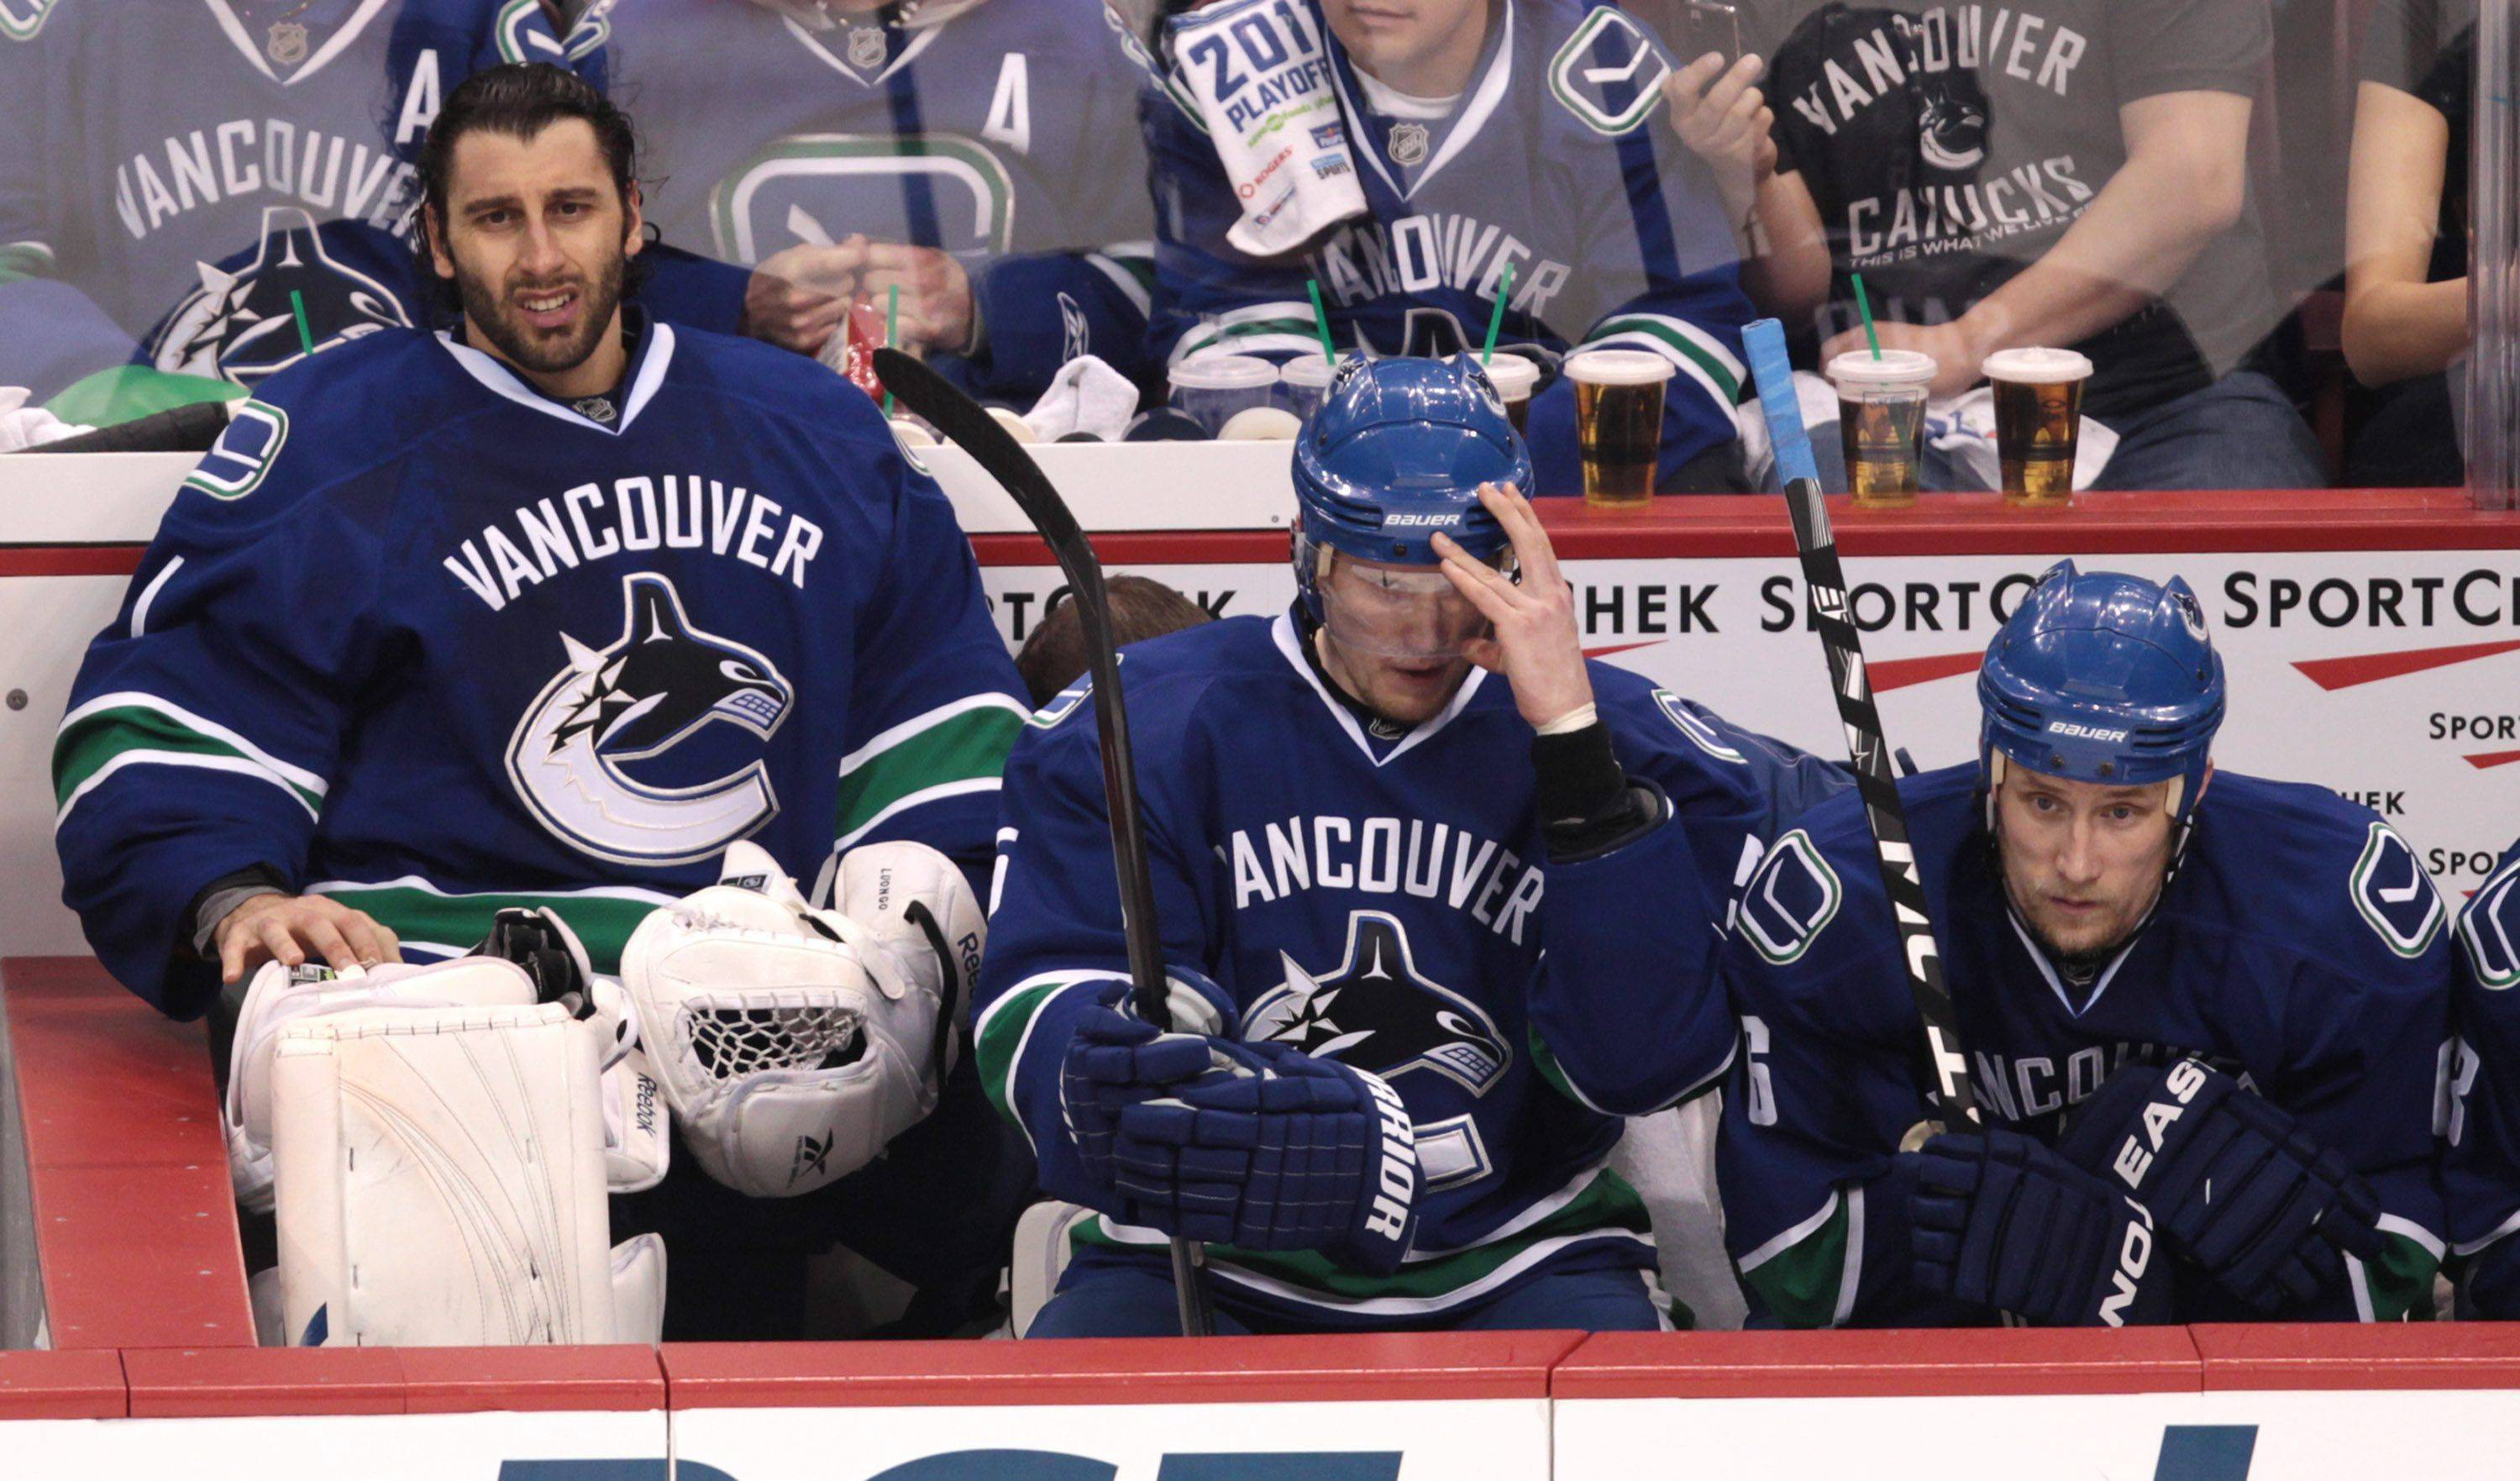 Vancouver Canucks goalie Roberto Luongo sits on the bench after being replaced in Game 5 on Thursday.